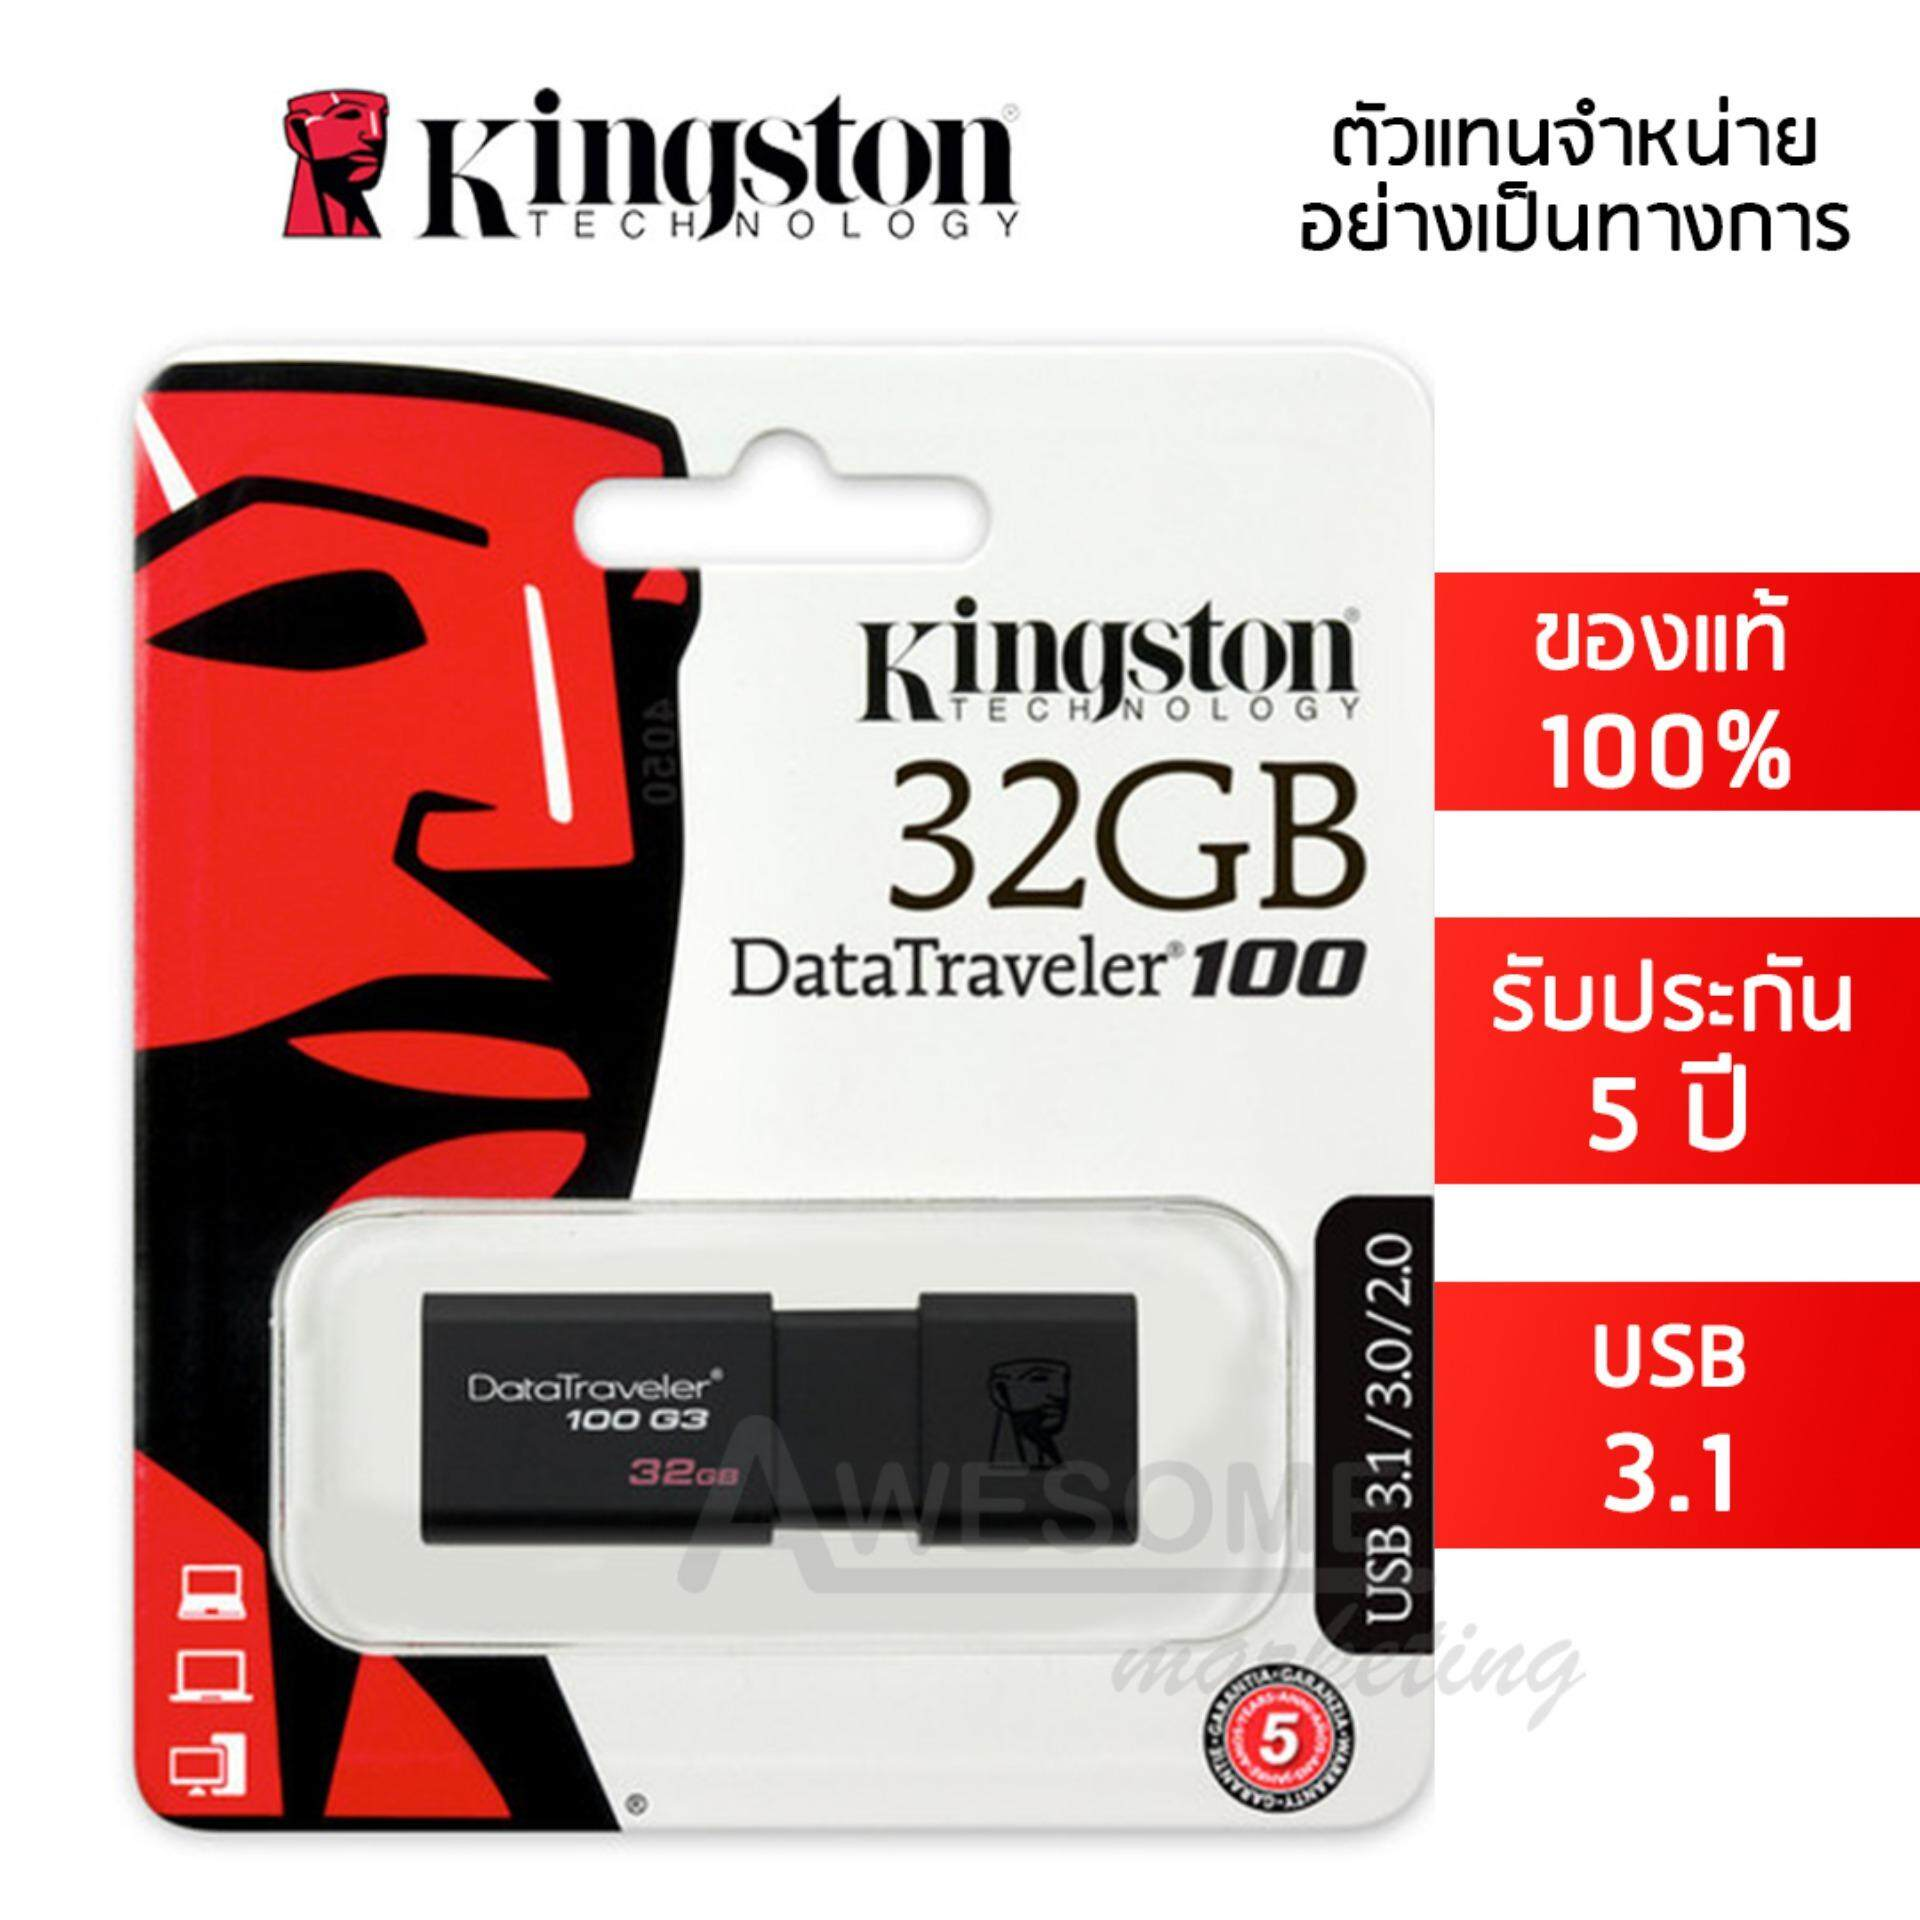 Kingston Usb 3.0 รุ่น Datatraveler 100 G3 ความจุ 32gb By Kingston Online Store.